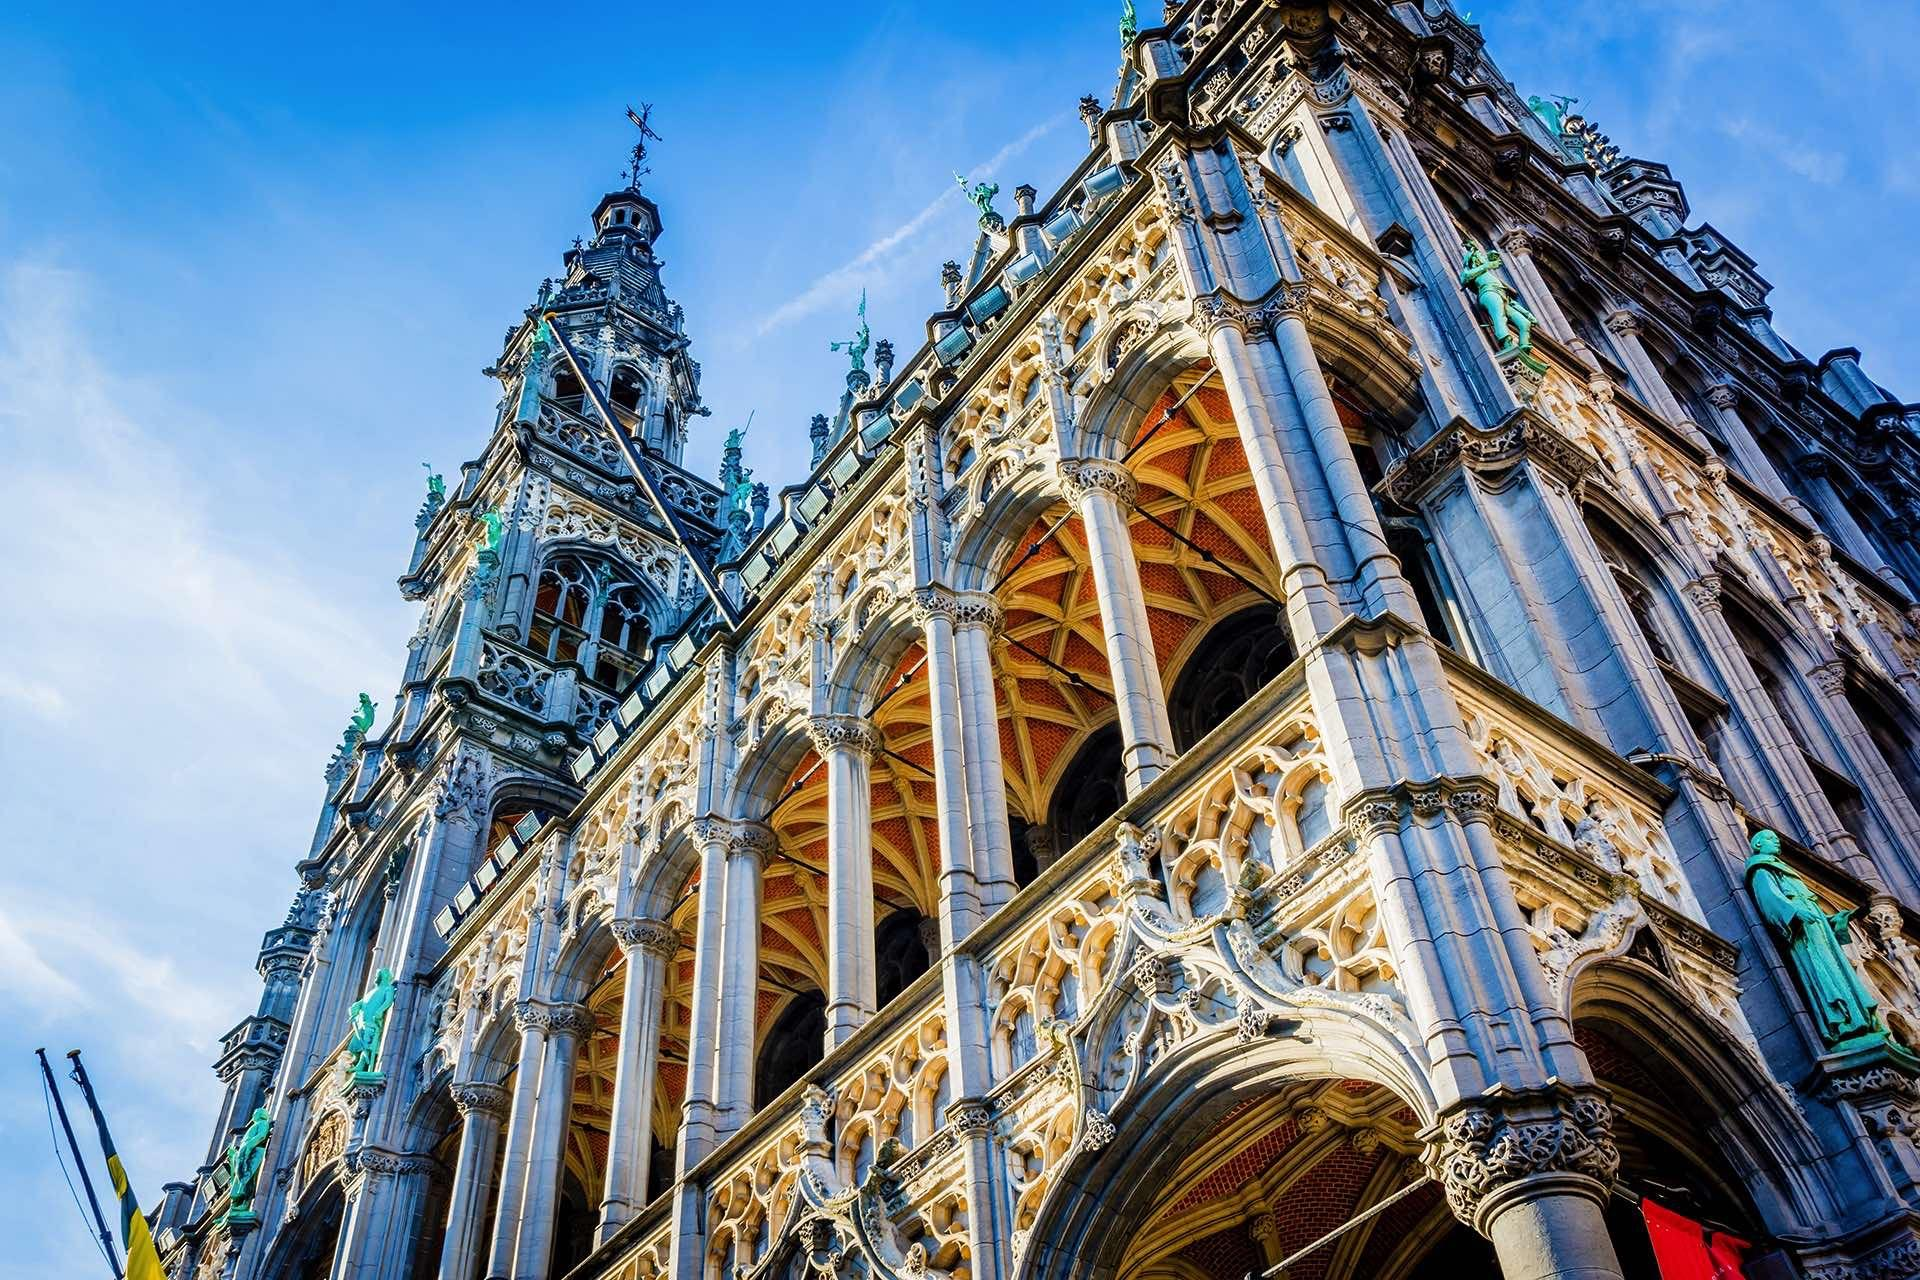 Brussels View Building Grand Place